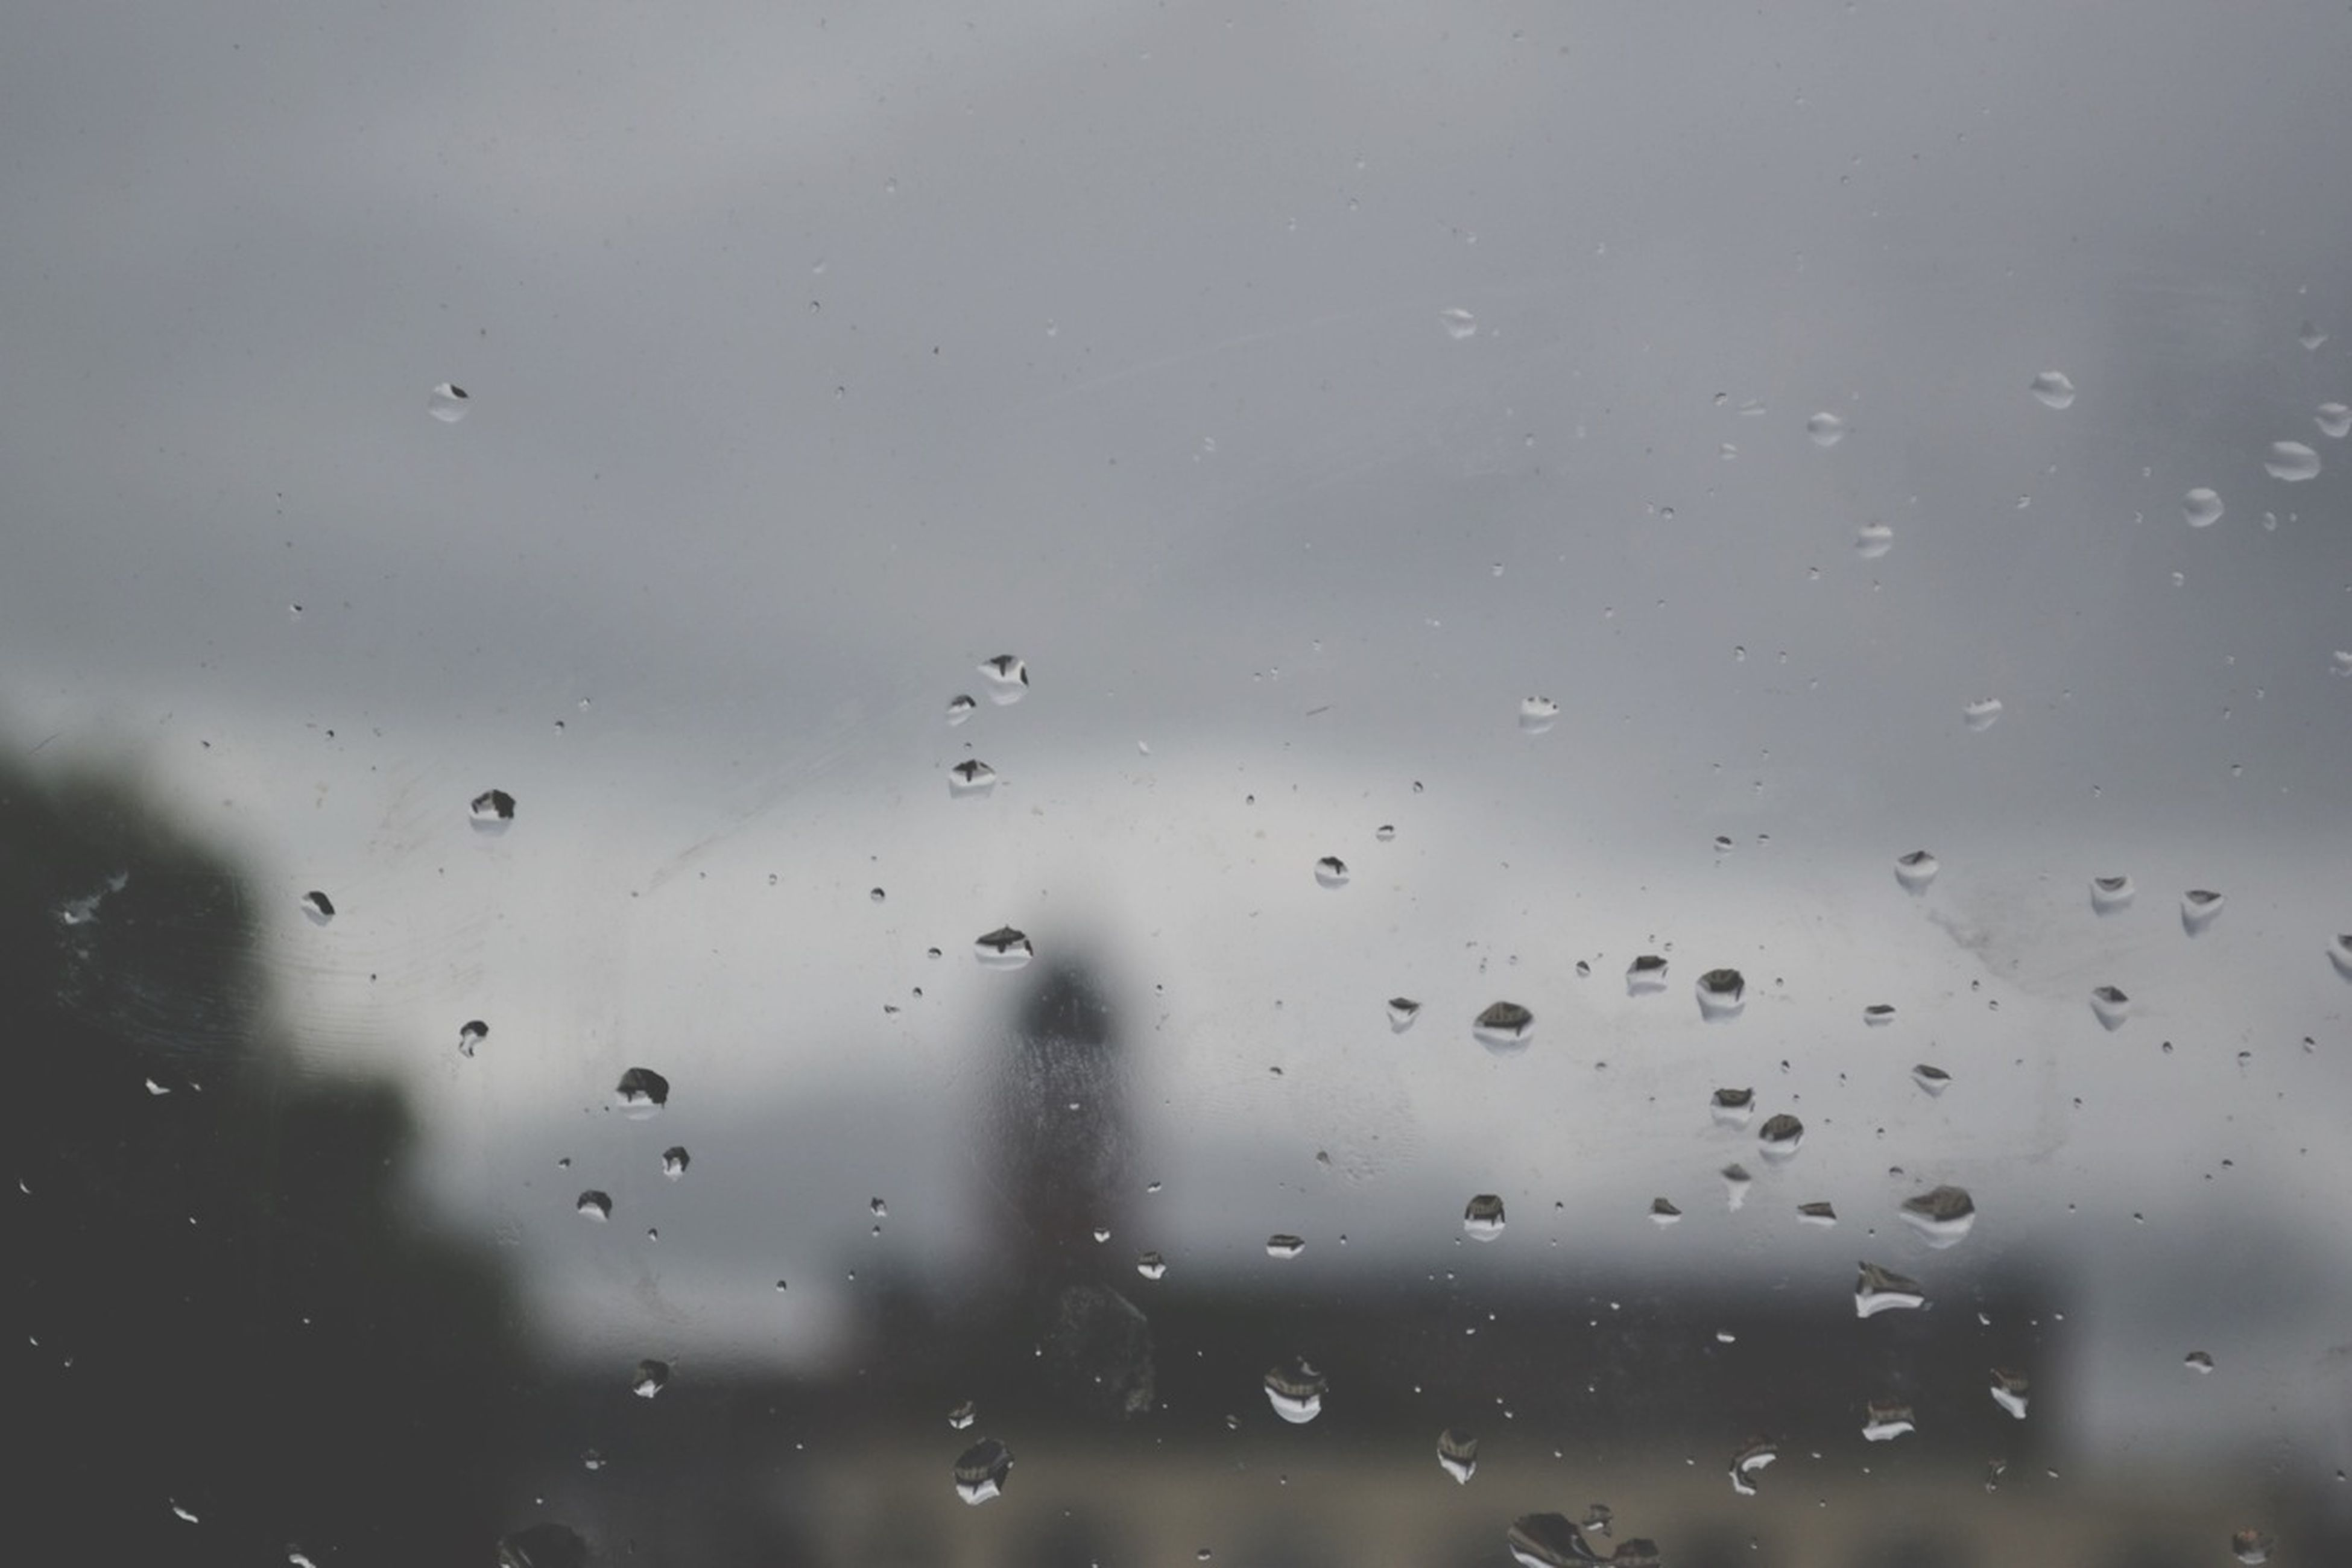 drop, wet, water, window, rain, transparent, indoors, raindrop, glass - material, weather, full frame, backgrounds, focus on foreground, sky, season, glass, close-up, droplet, water drop, monsoon